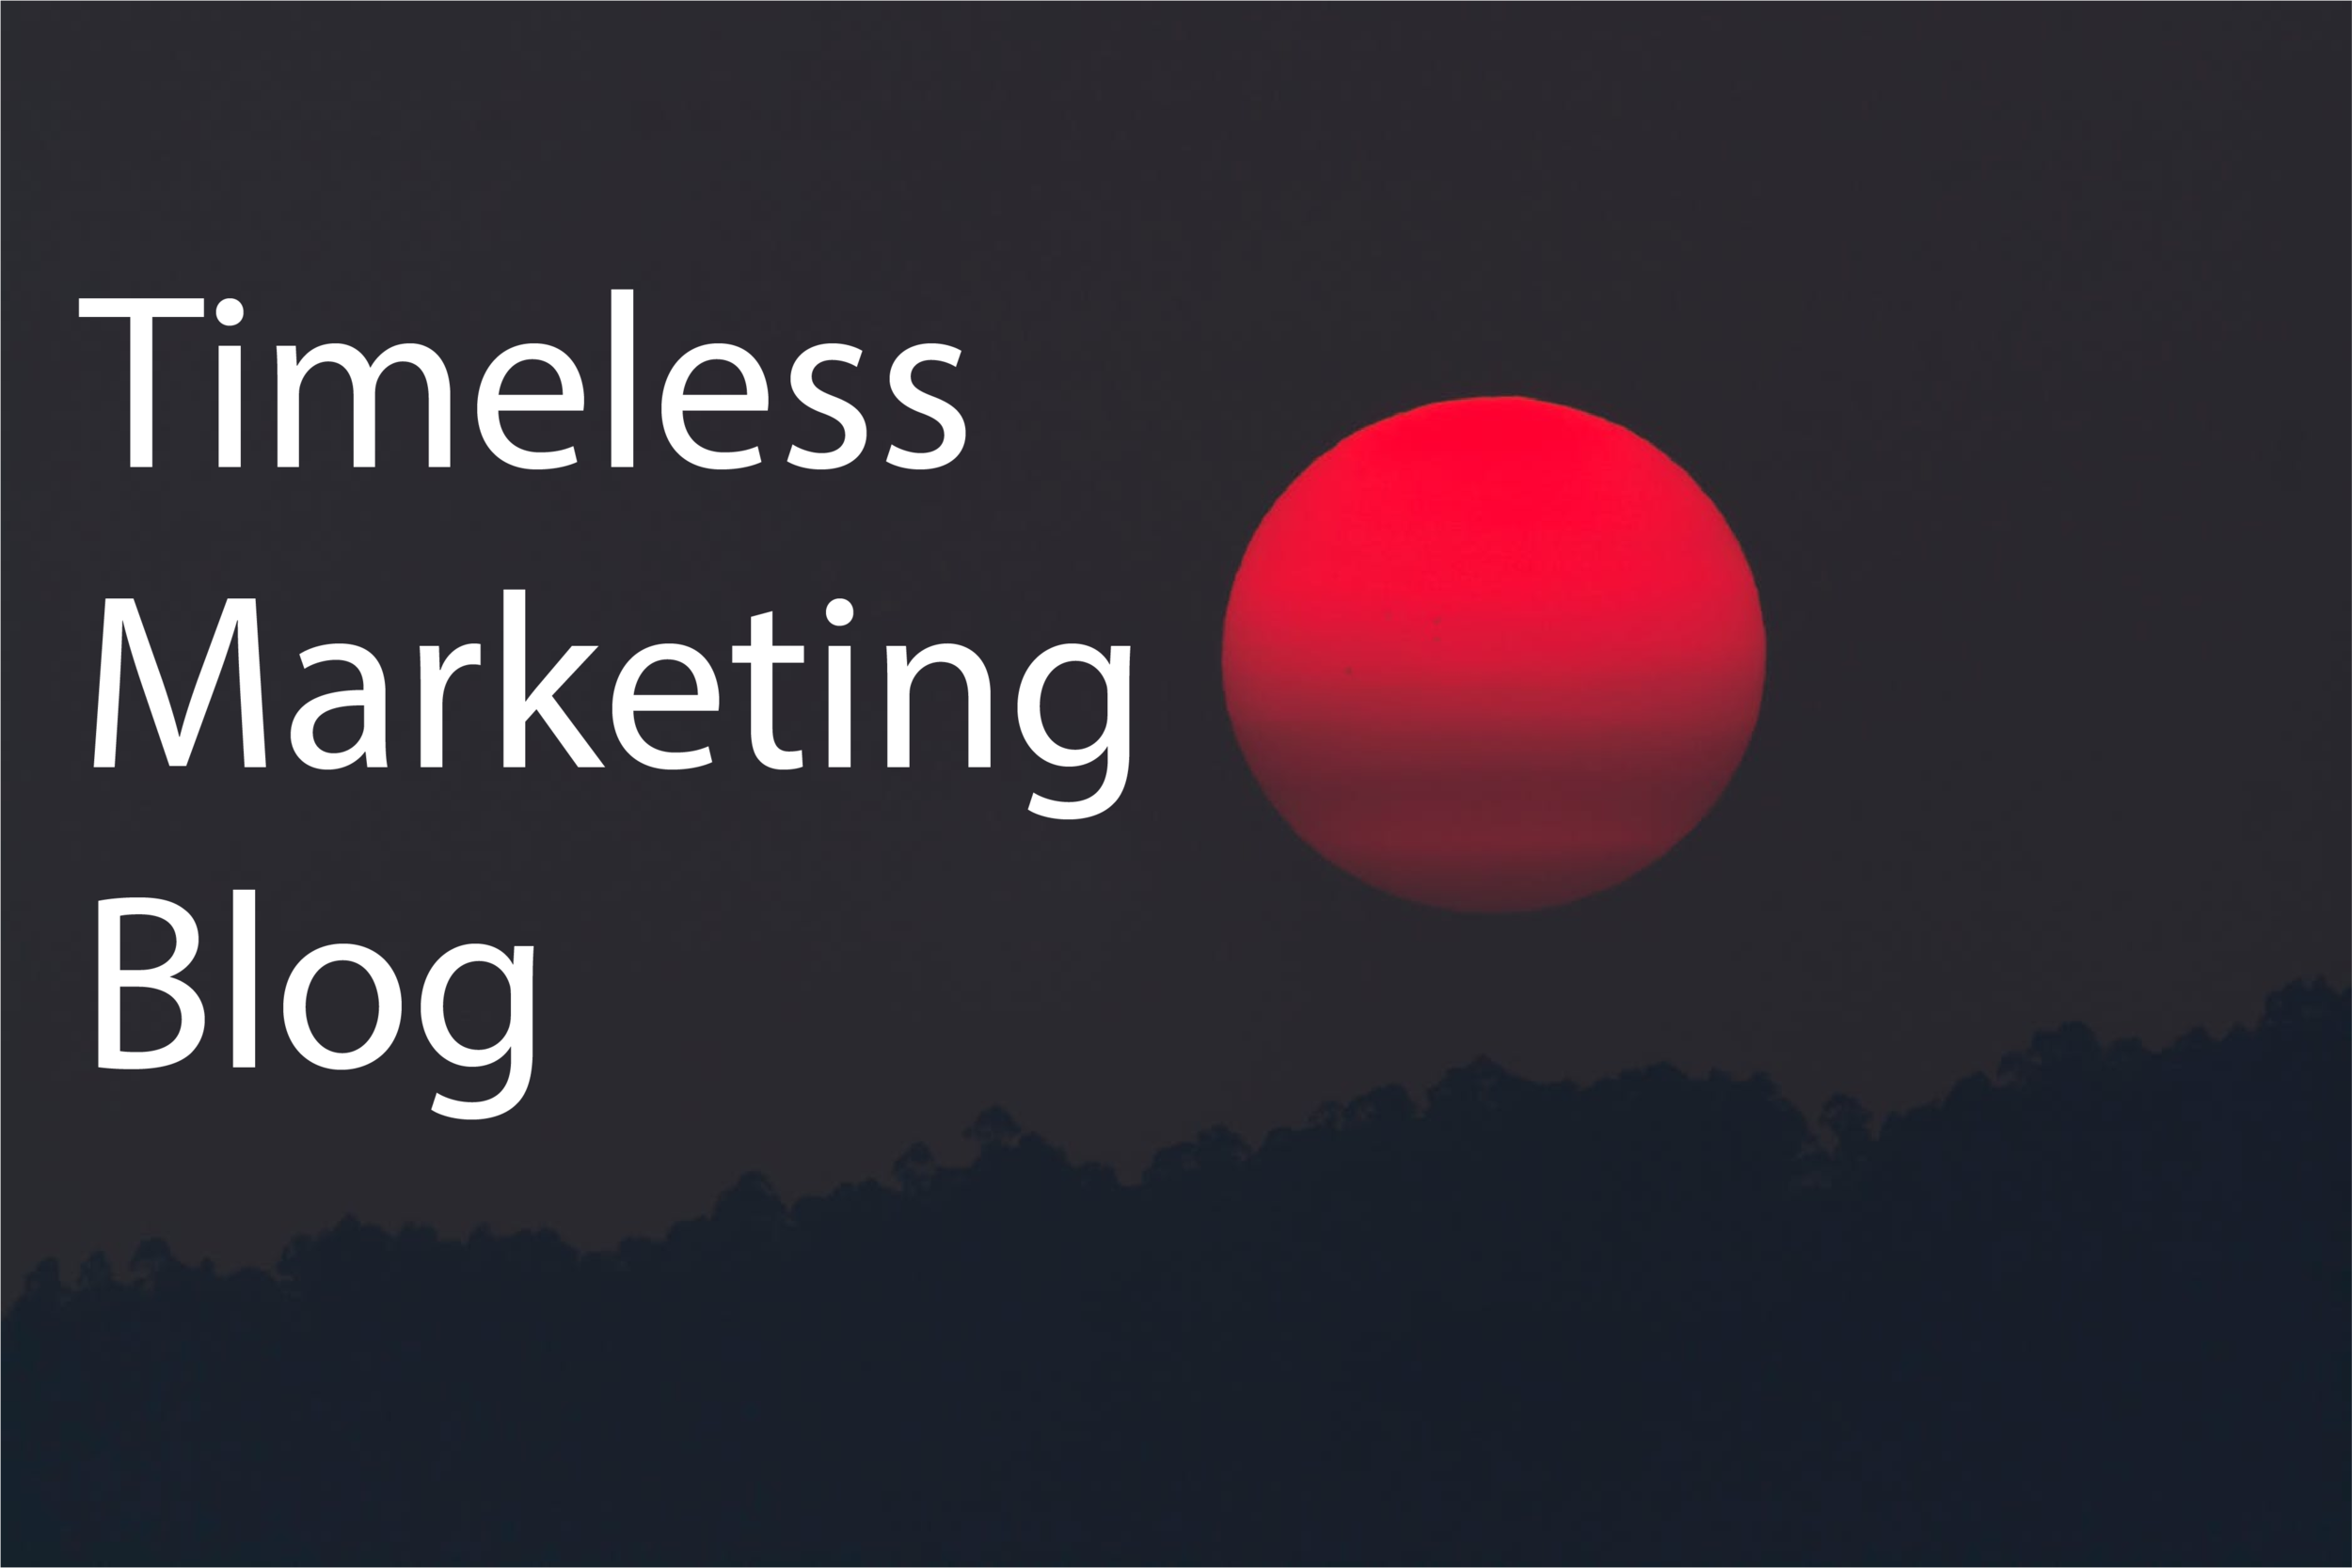 Timeless Marketing Blog Home Pic.png